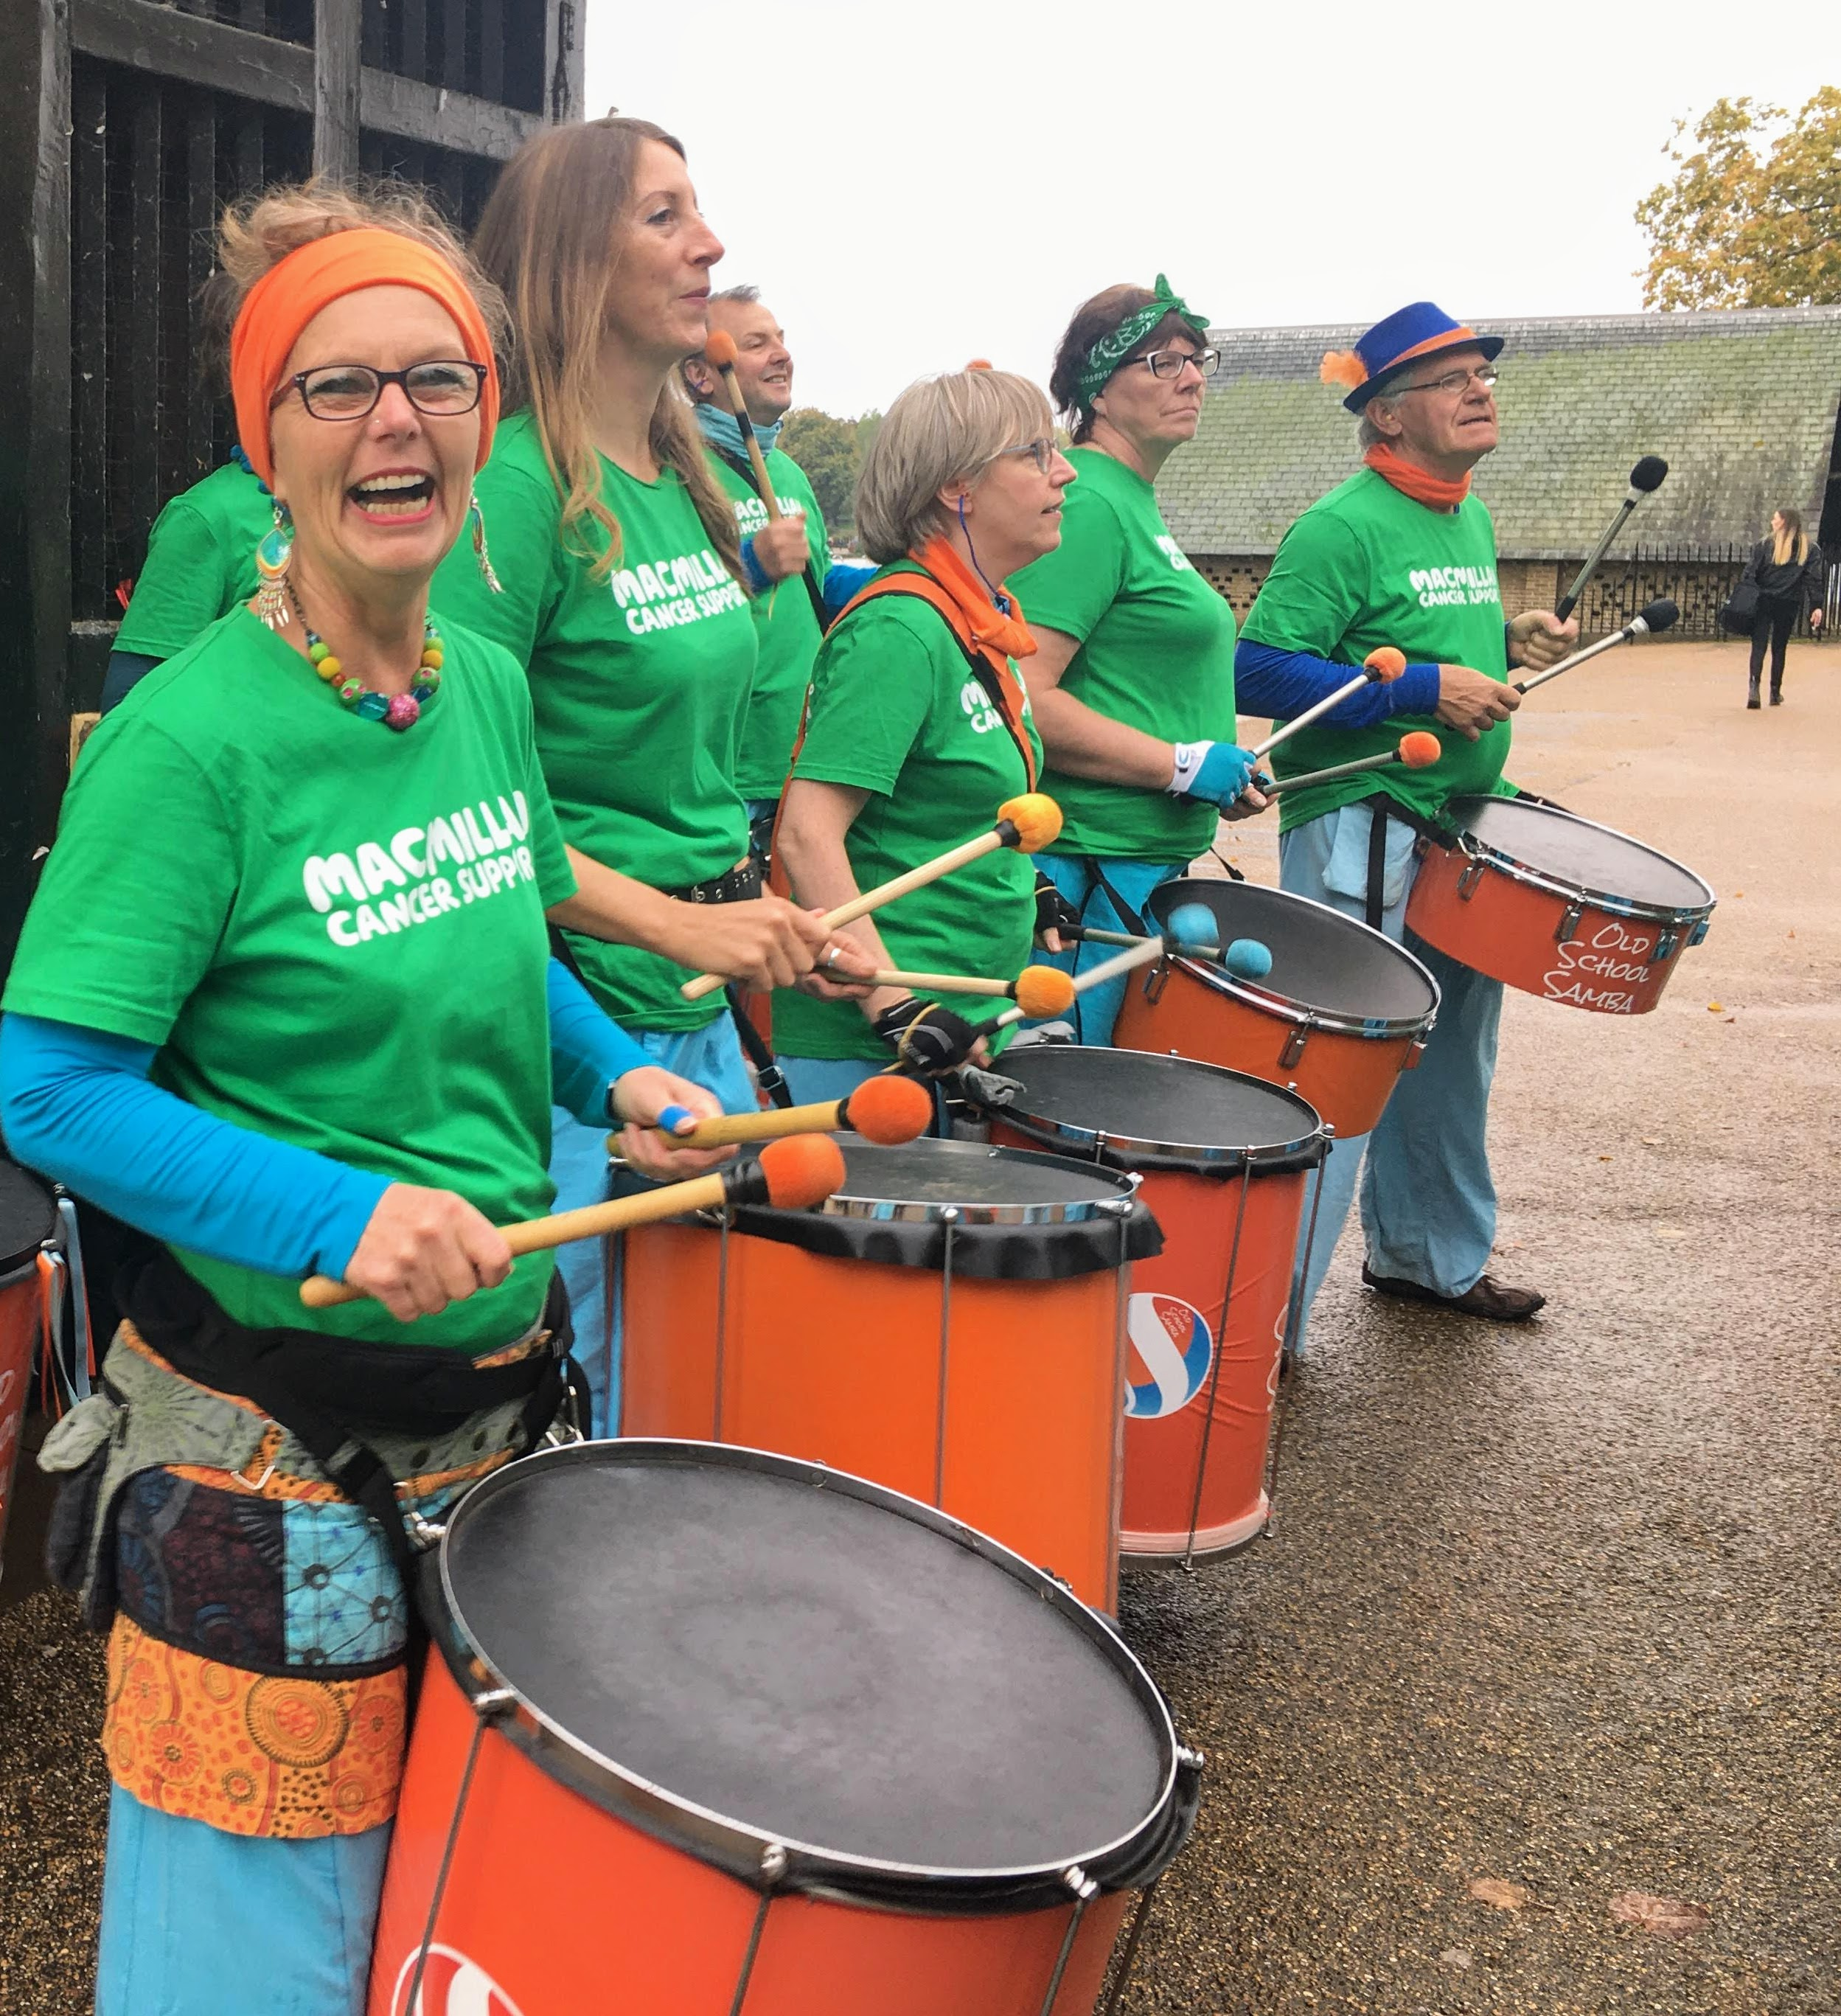 Old School Samba at the Royal Parks Half marathon